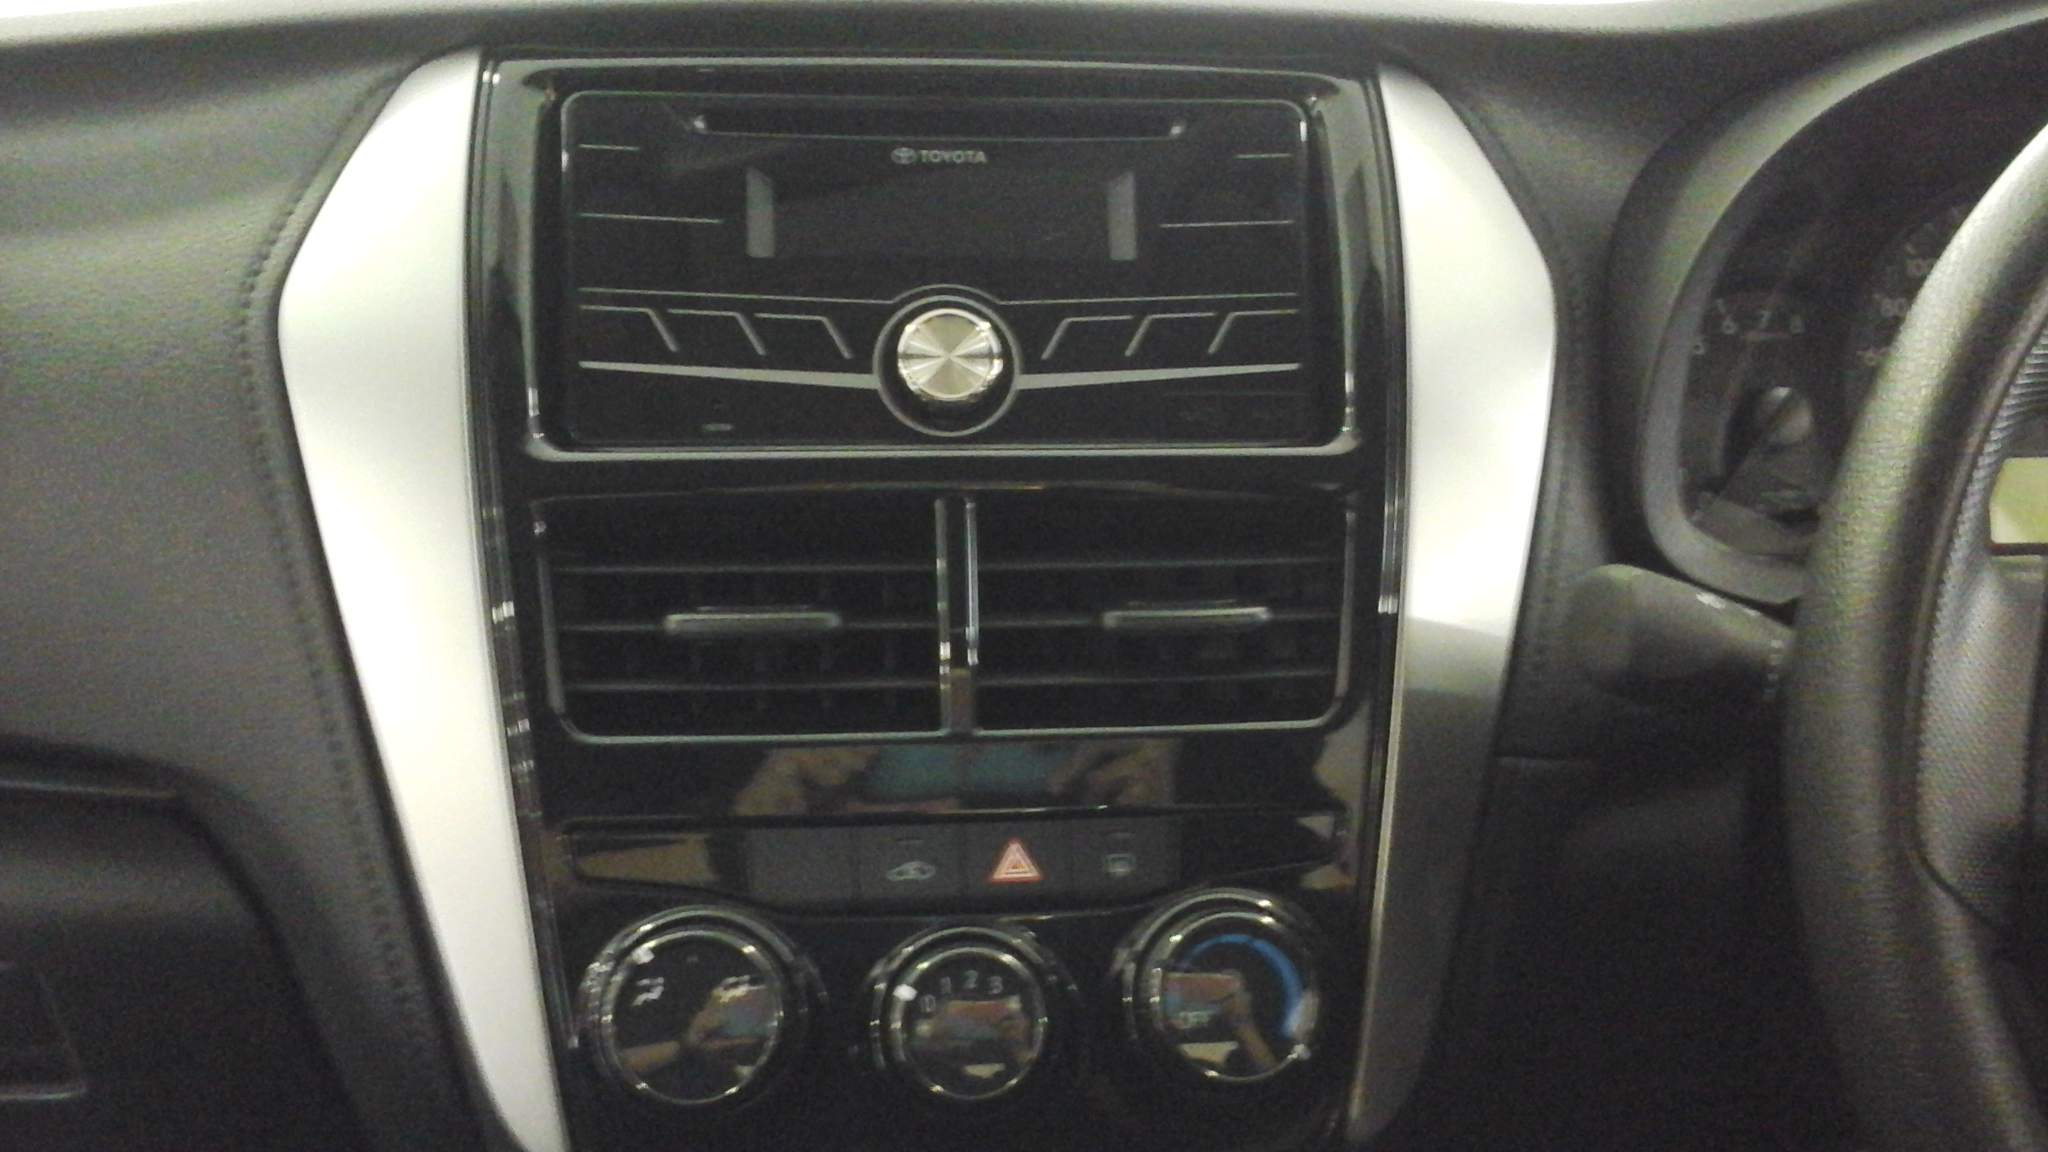 File:2018 Toyota Vios 1.5 5-speed Manual Facelift Interior with Audio  System.